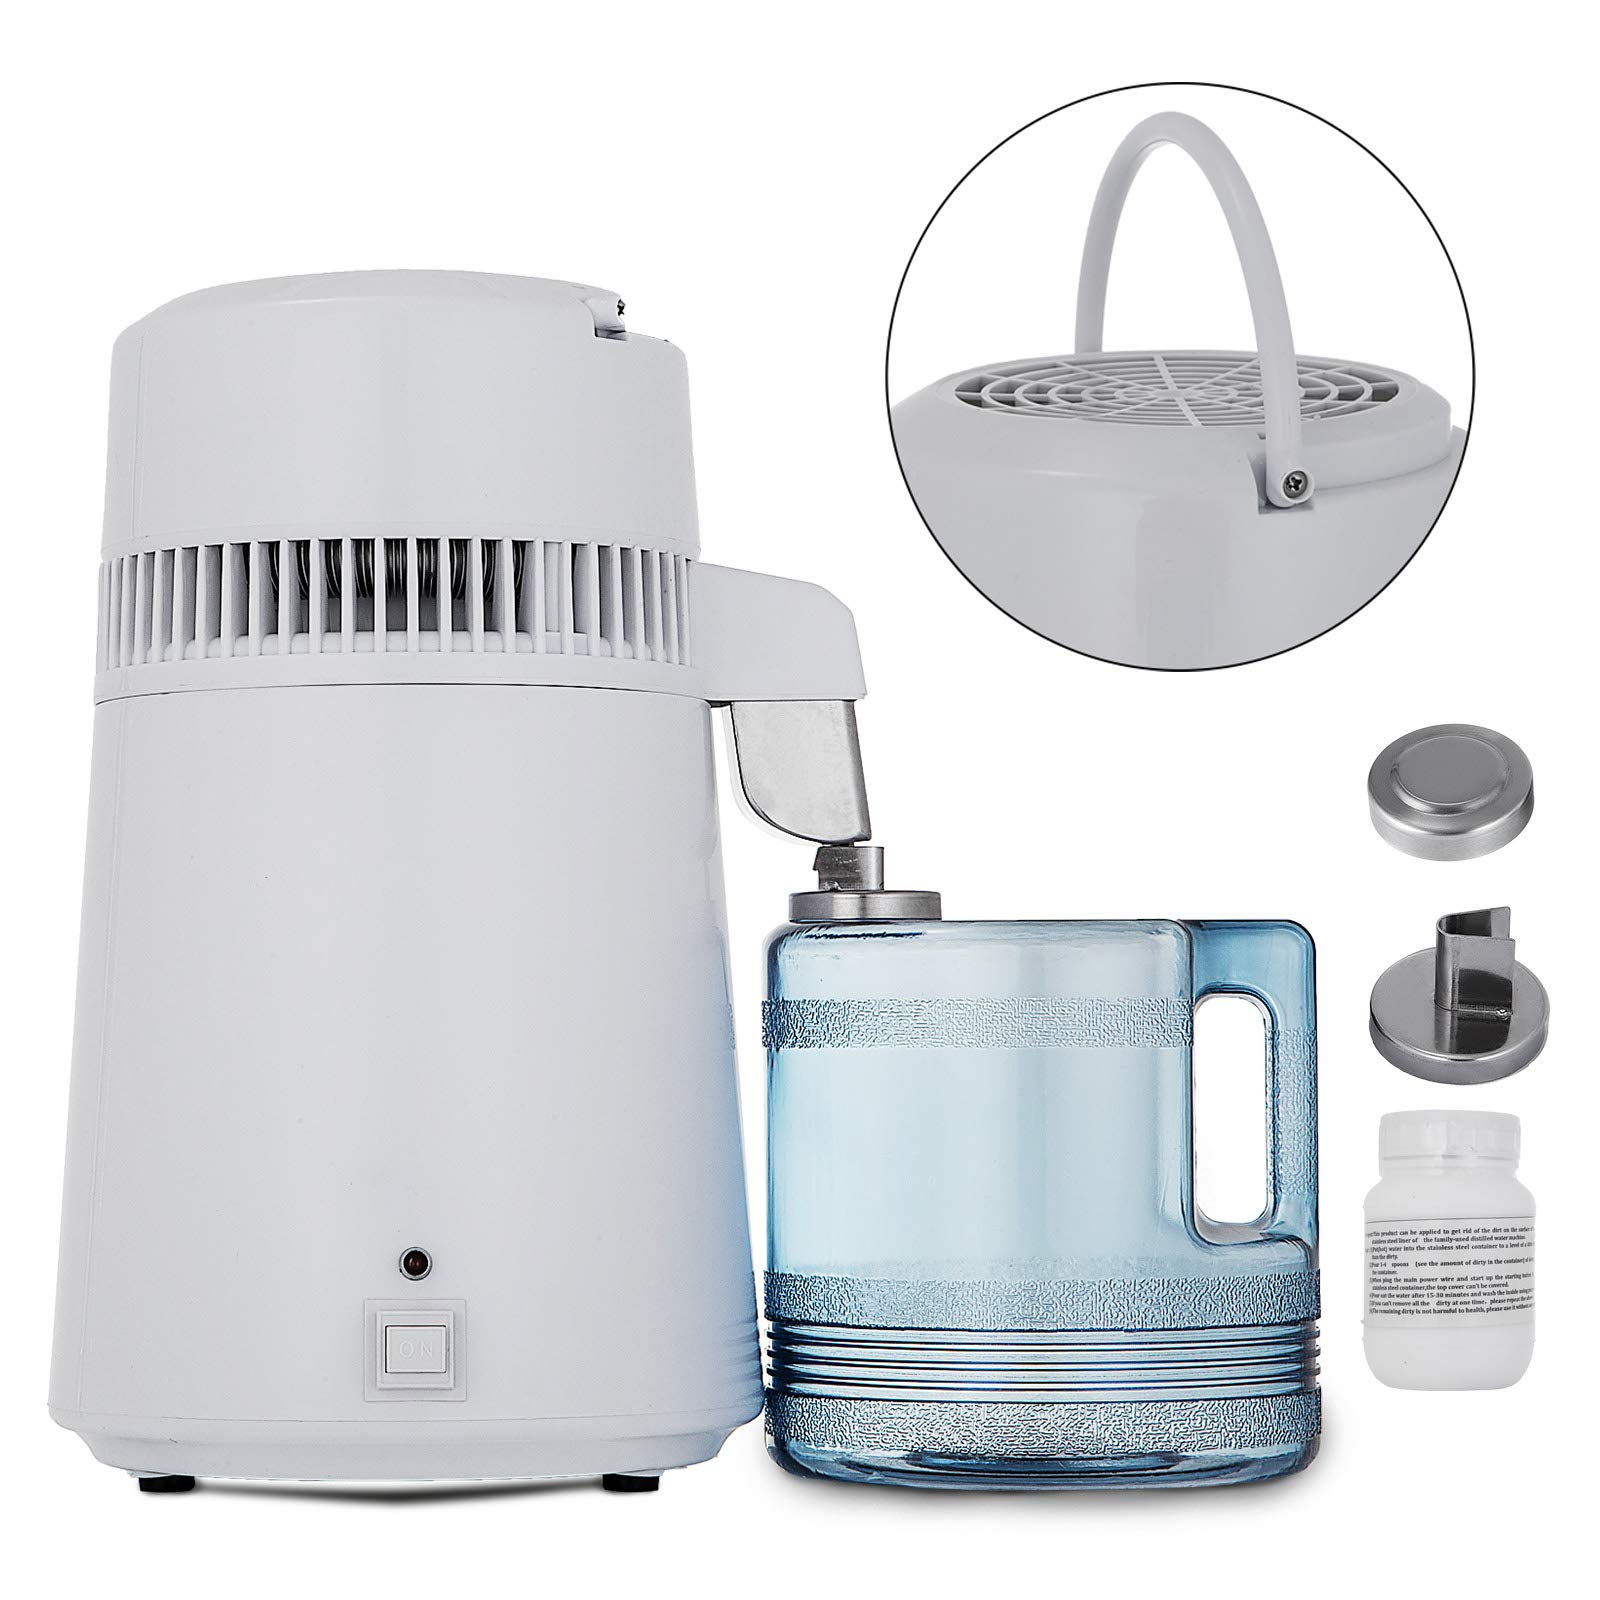 Mophorn Pure Water Distiller 4L Countertop Water Distiller 750W Stainless Steel Water Distillation Purifier